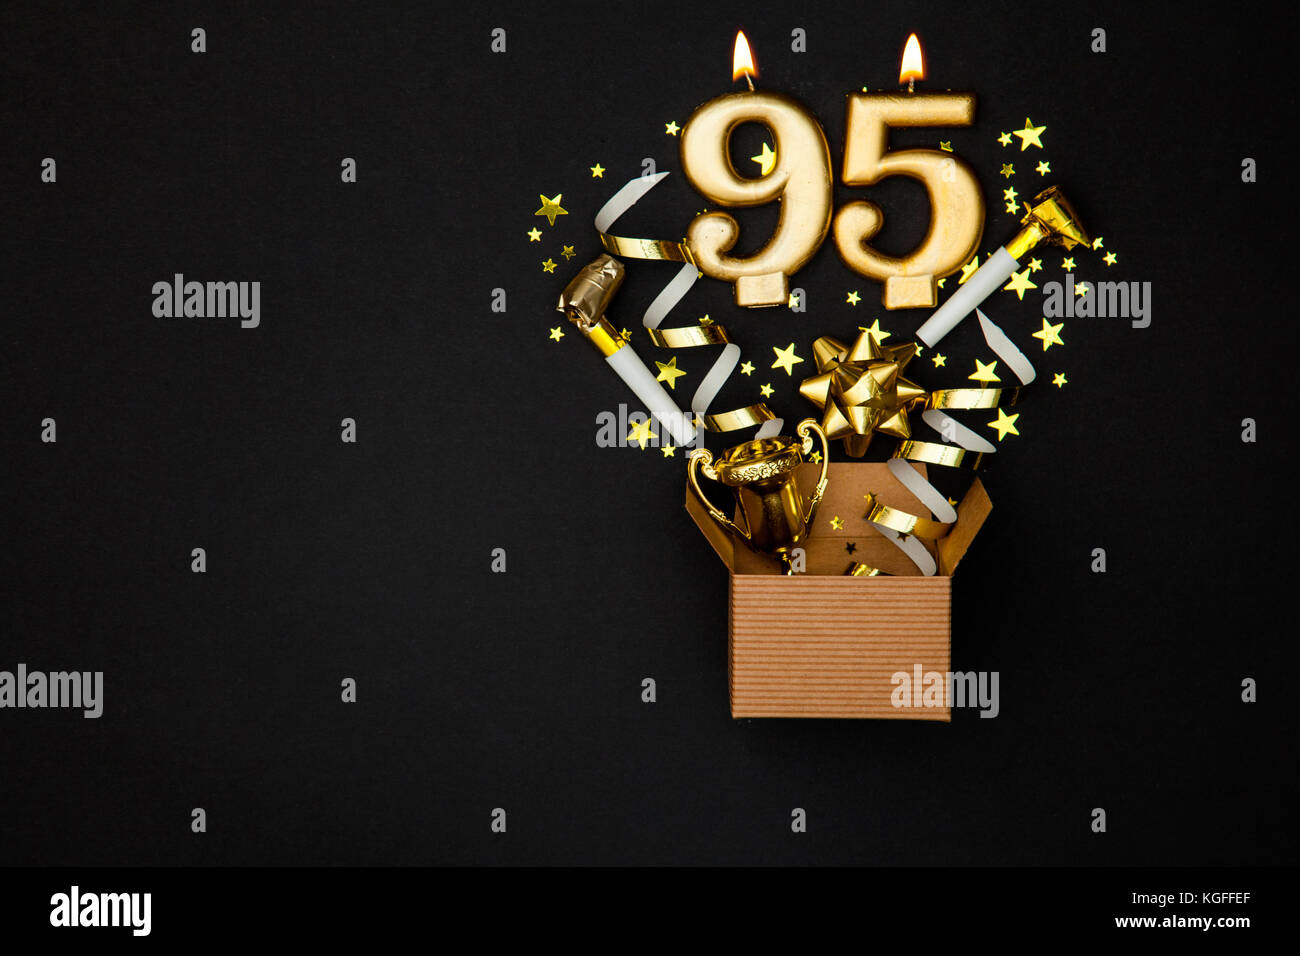 Number 95 Gold Celebration Candle And Gift Box Background